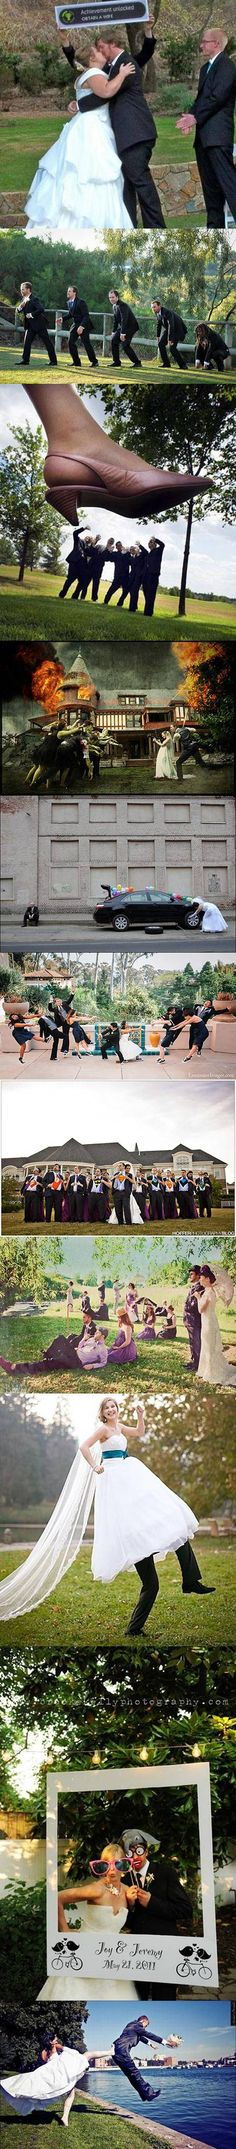 We've rounded up some of the world's geekiest wedding photos for your viewing enjoyment.